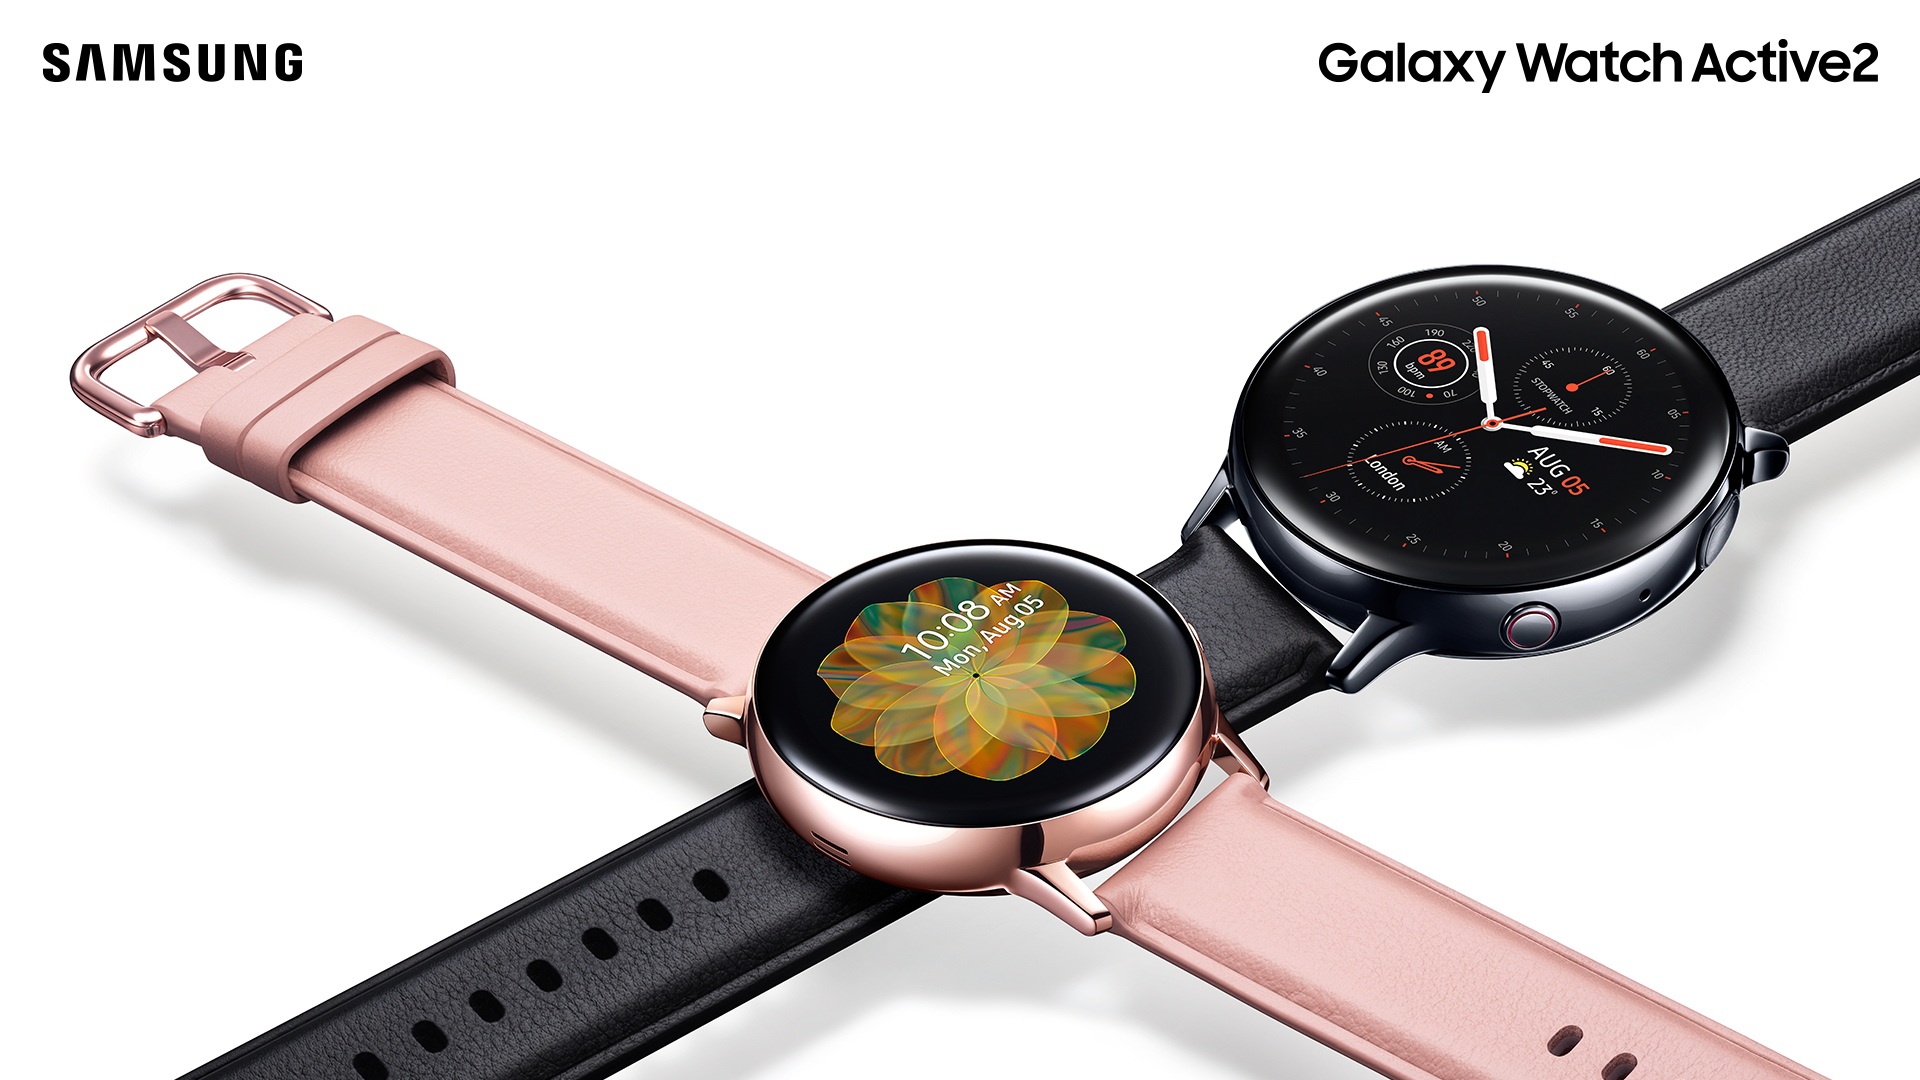 Samsung-Galaxy-Watch-Active-2-PR-News-00004